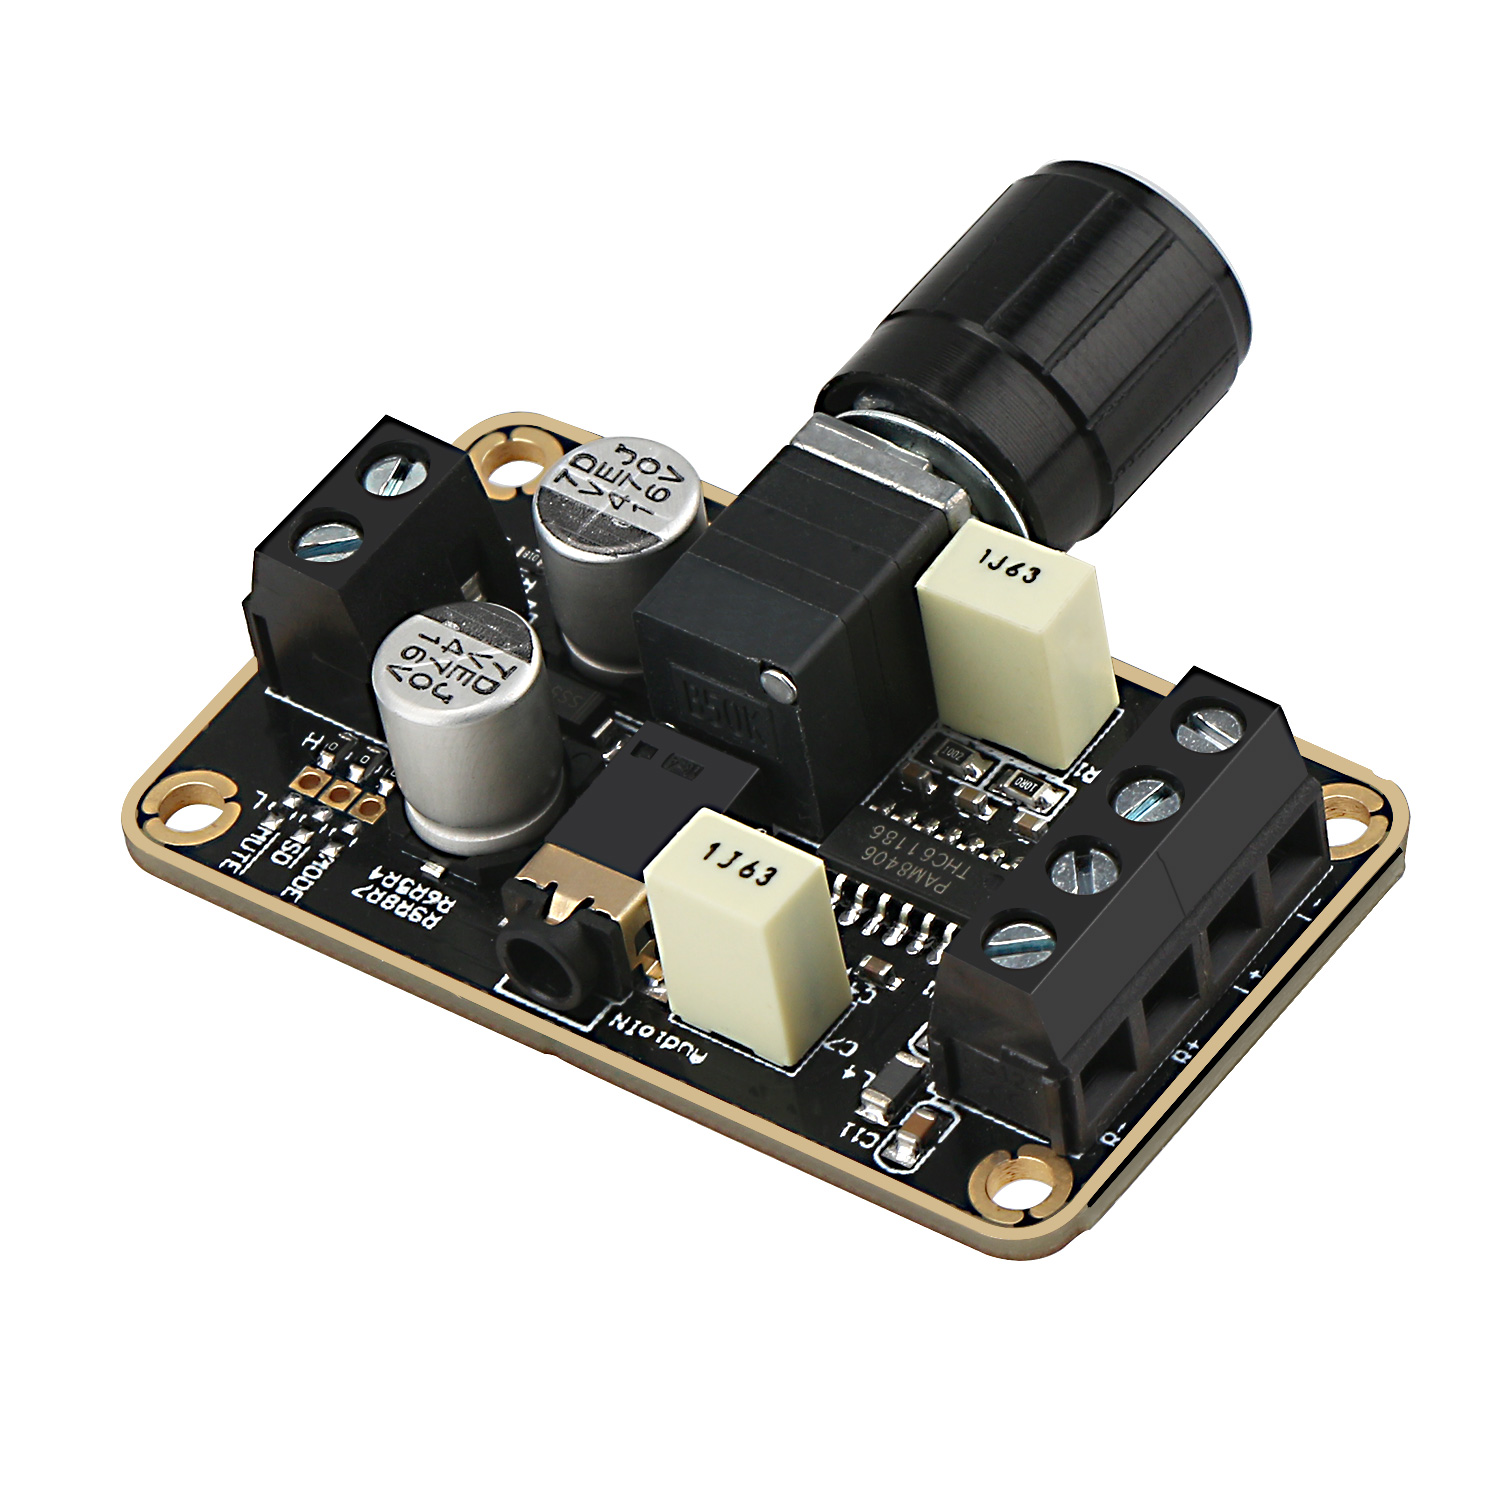 5W Audio Amplifier Module, Digital Amplifier DC 5V HIFI Class D